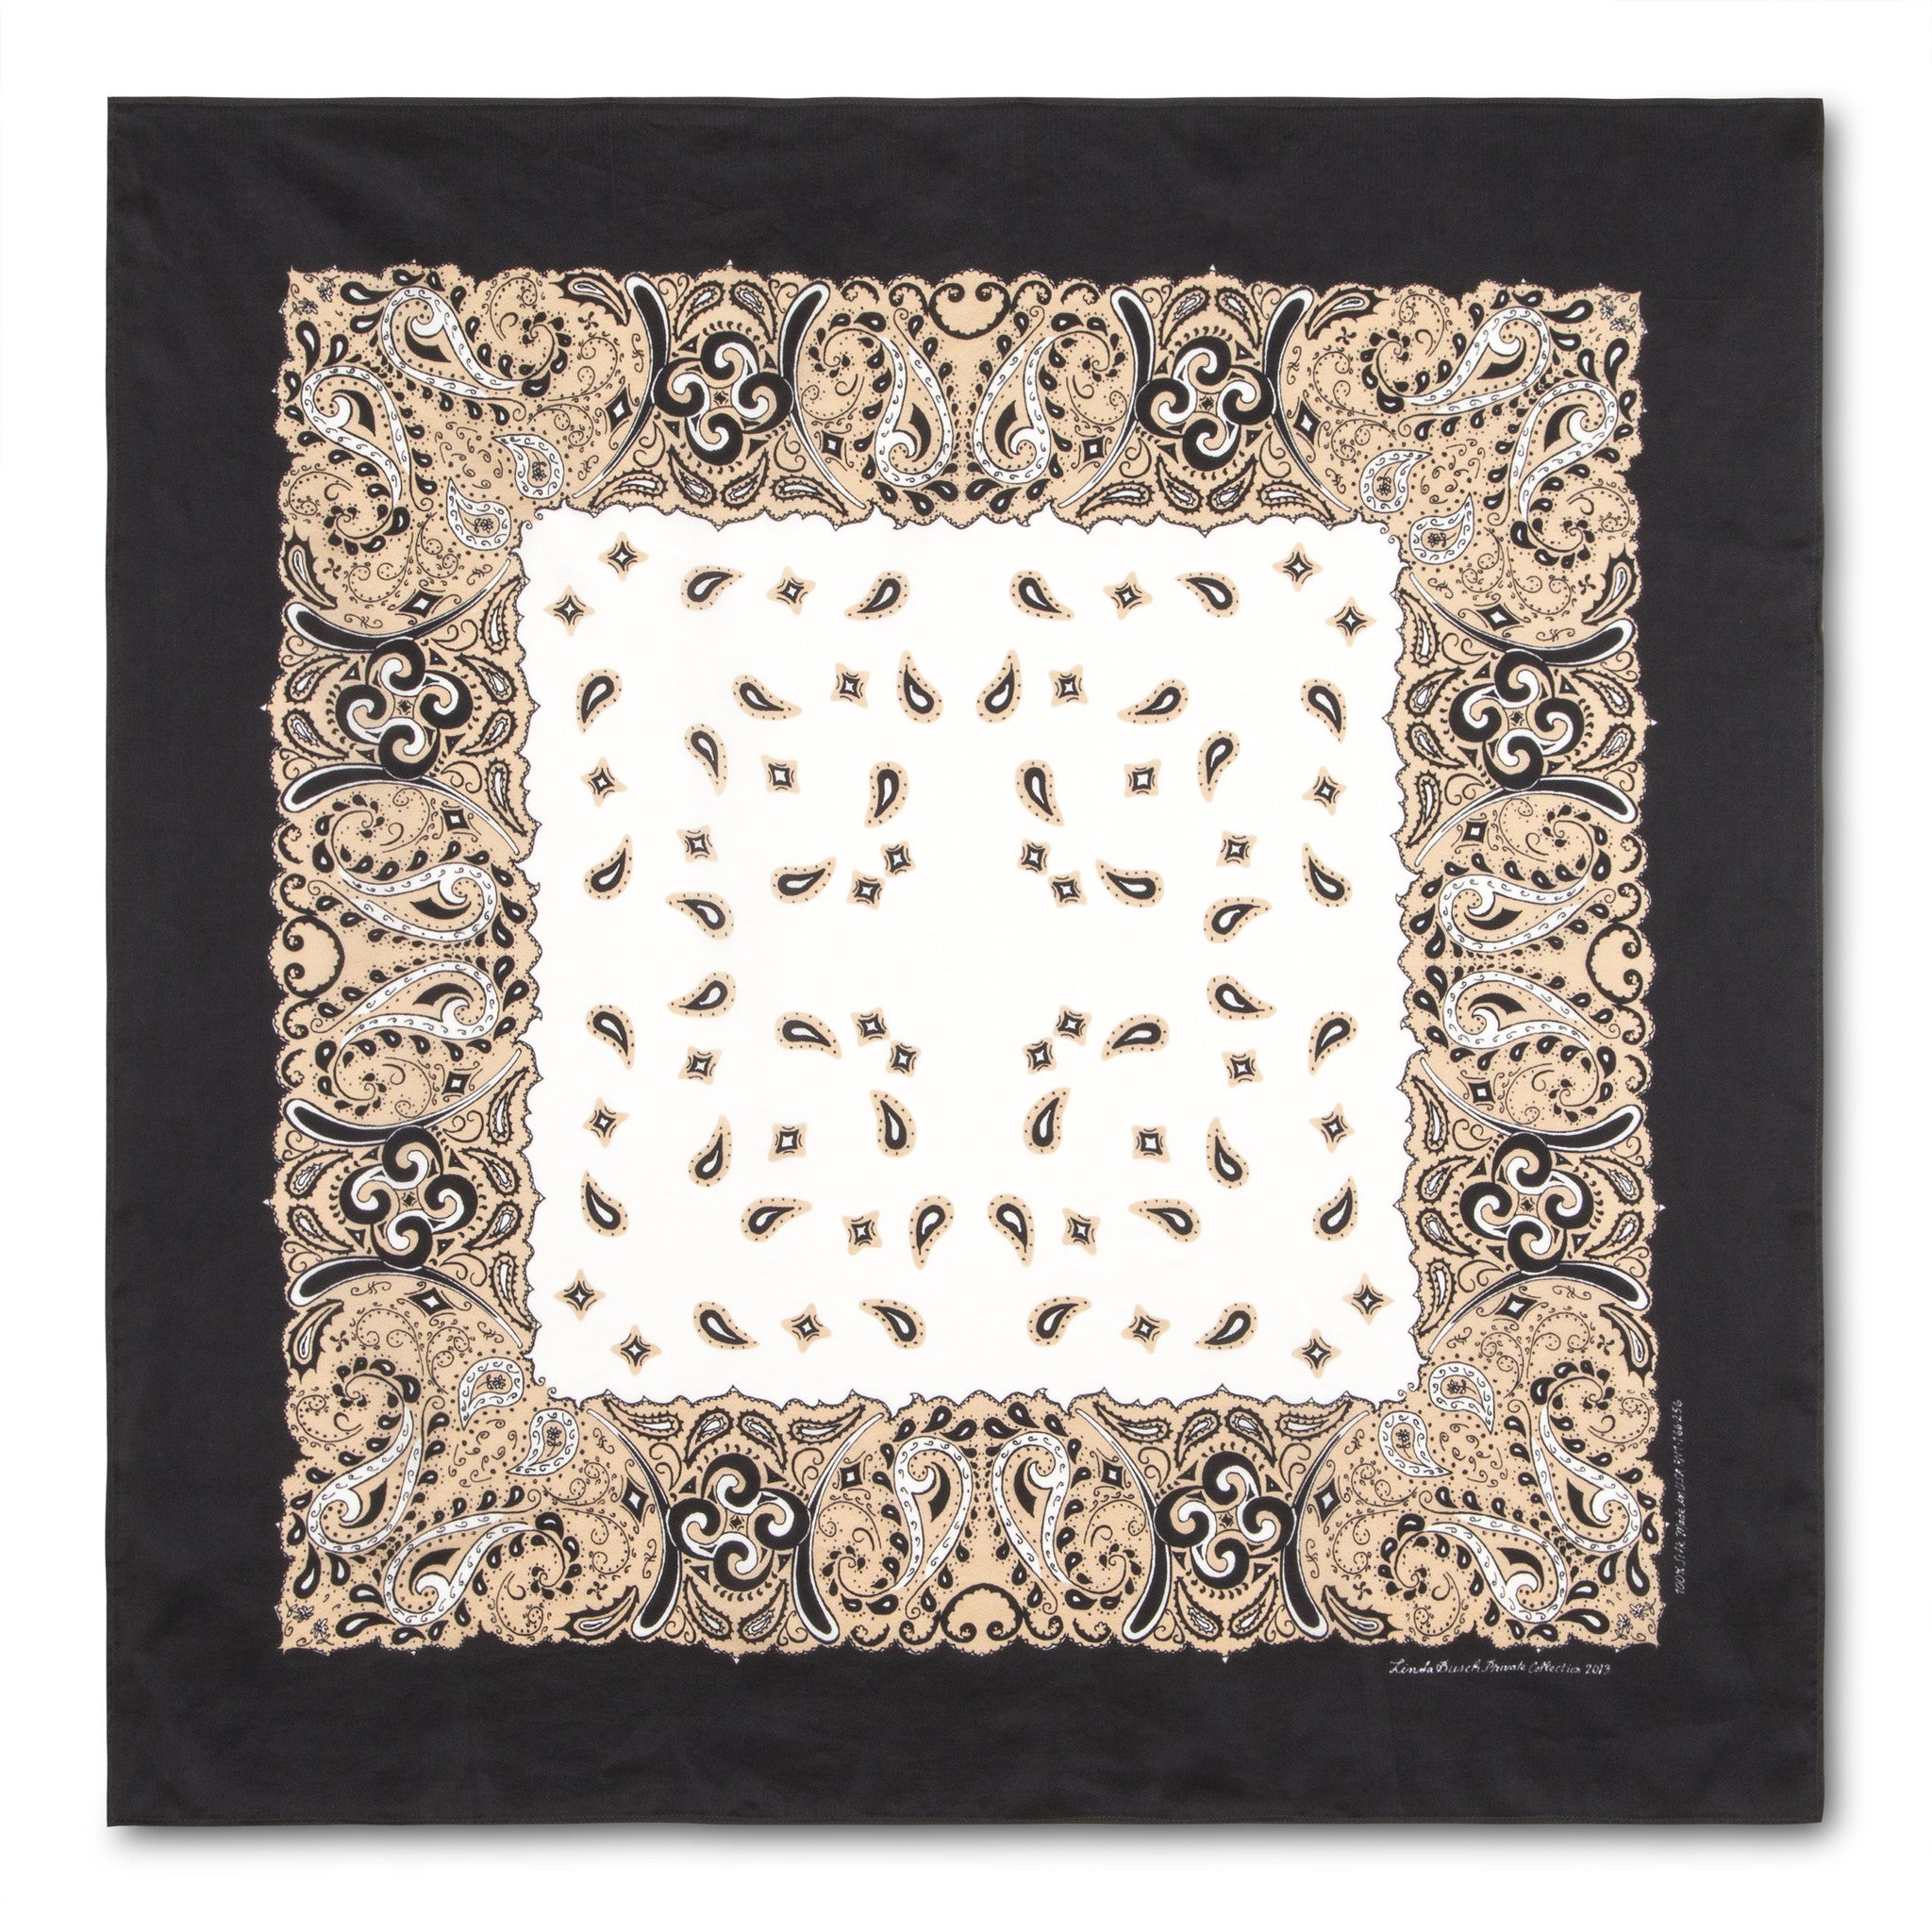 Silk Bandanna in Sand, Black, White